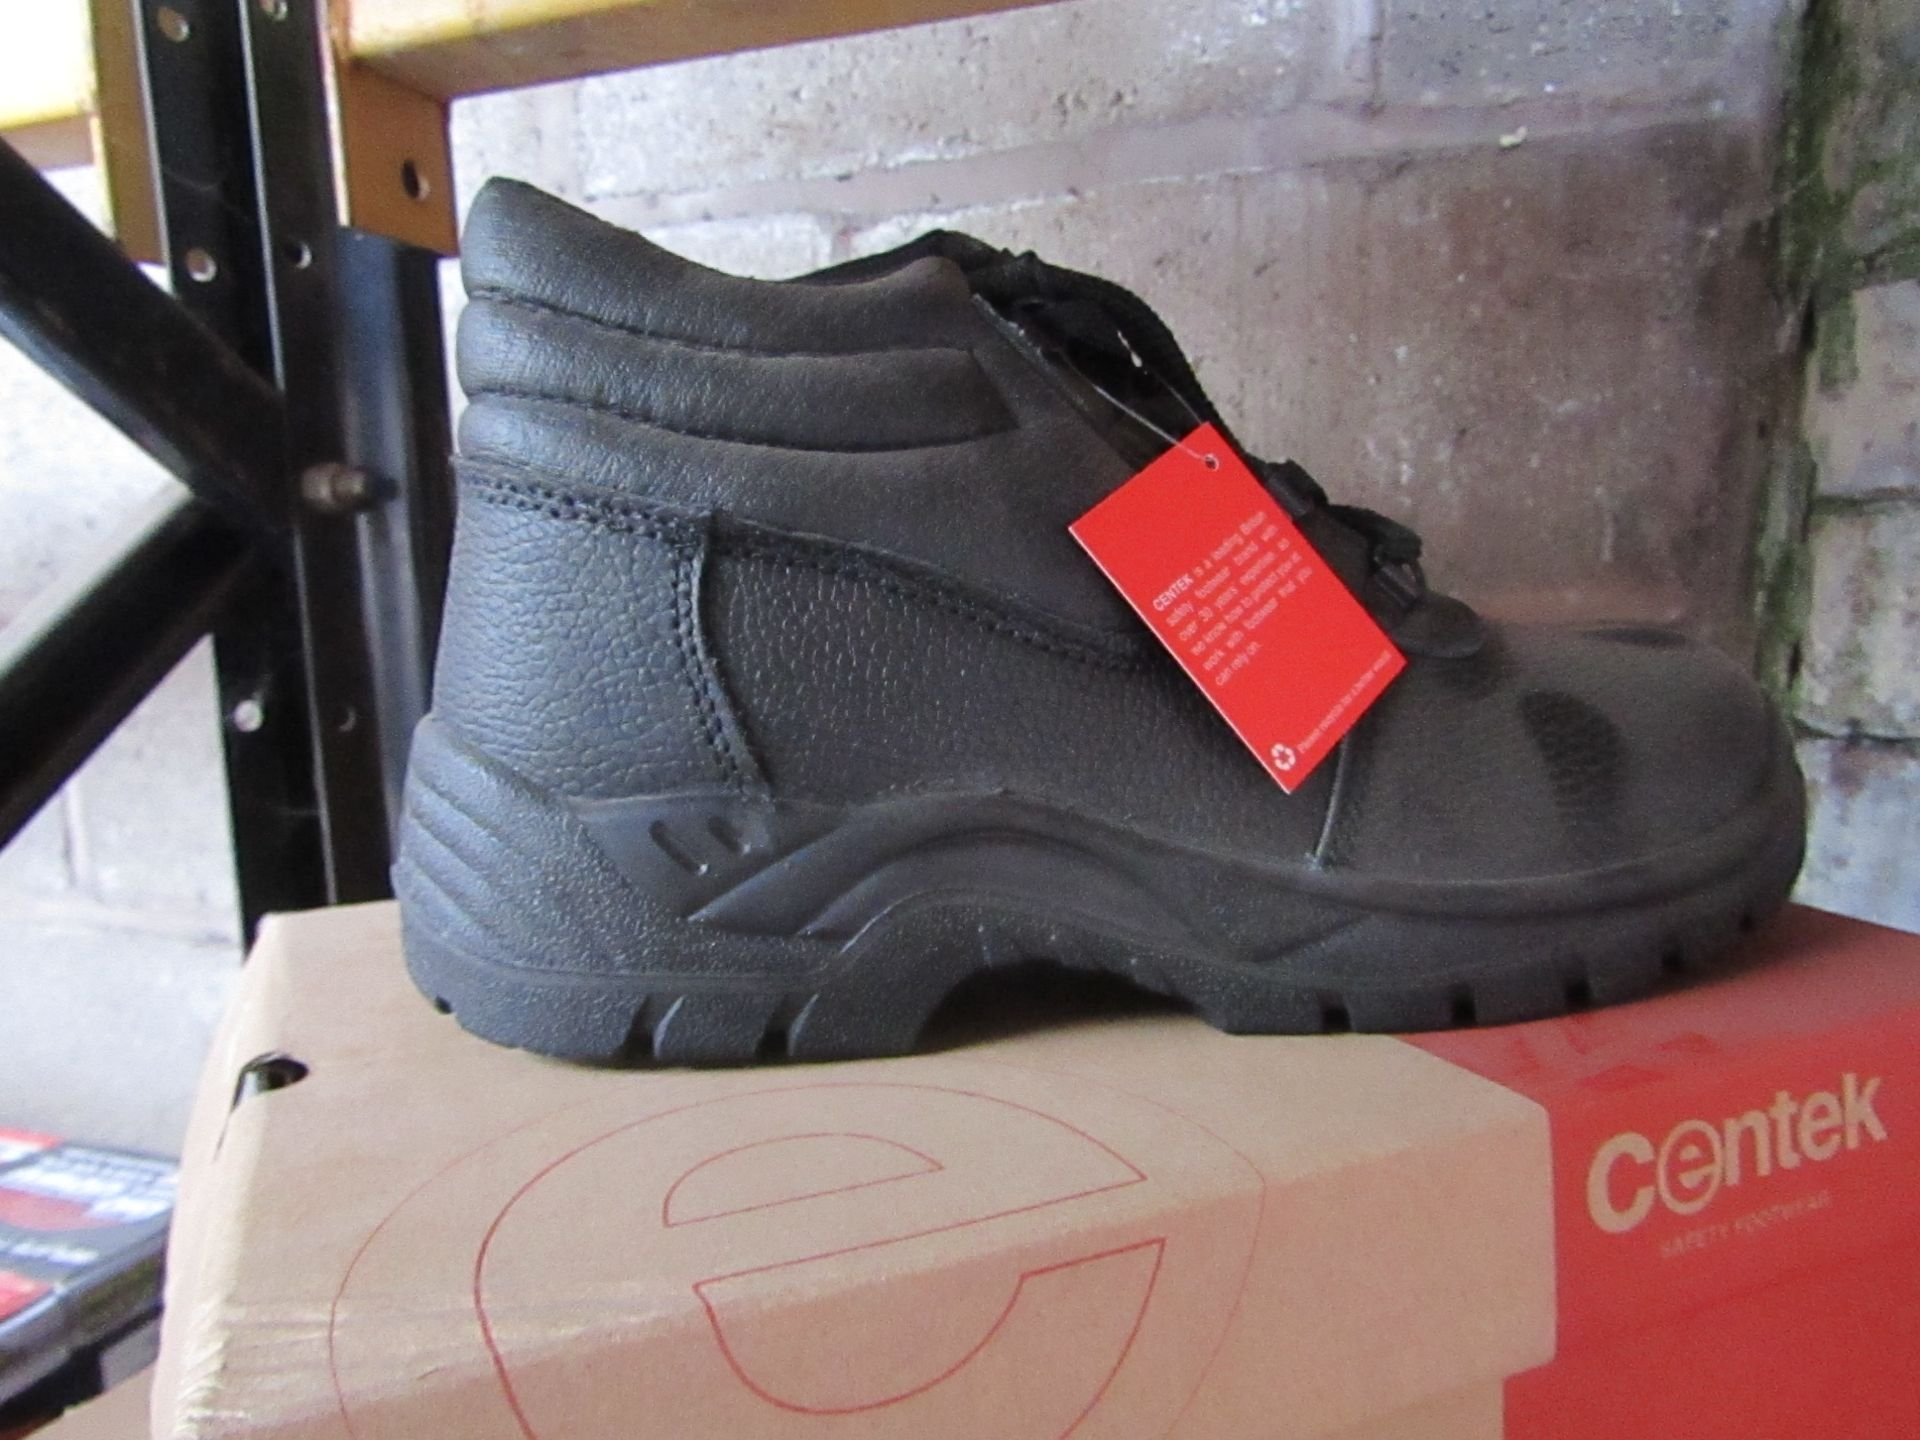 Lot 80 - Centek - Black Steel Toe Cap Boot - Size 9 - New & Boxed.